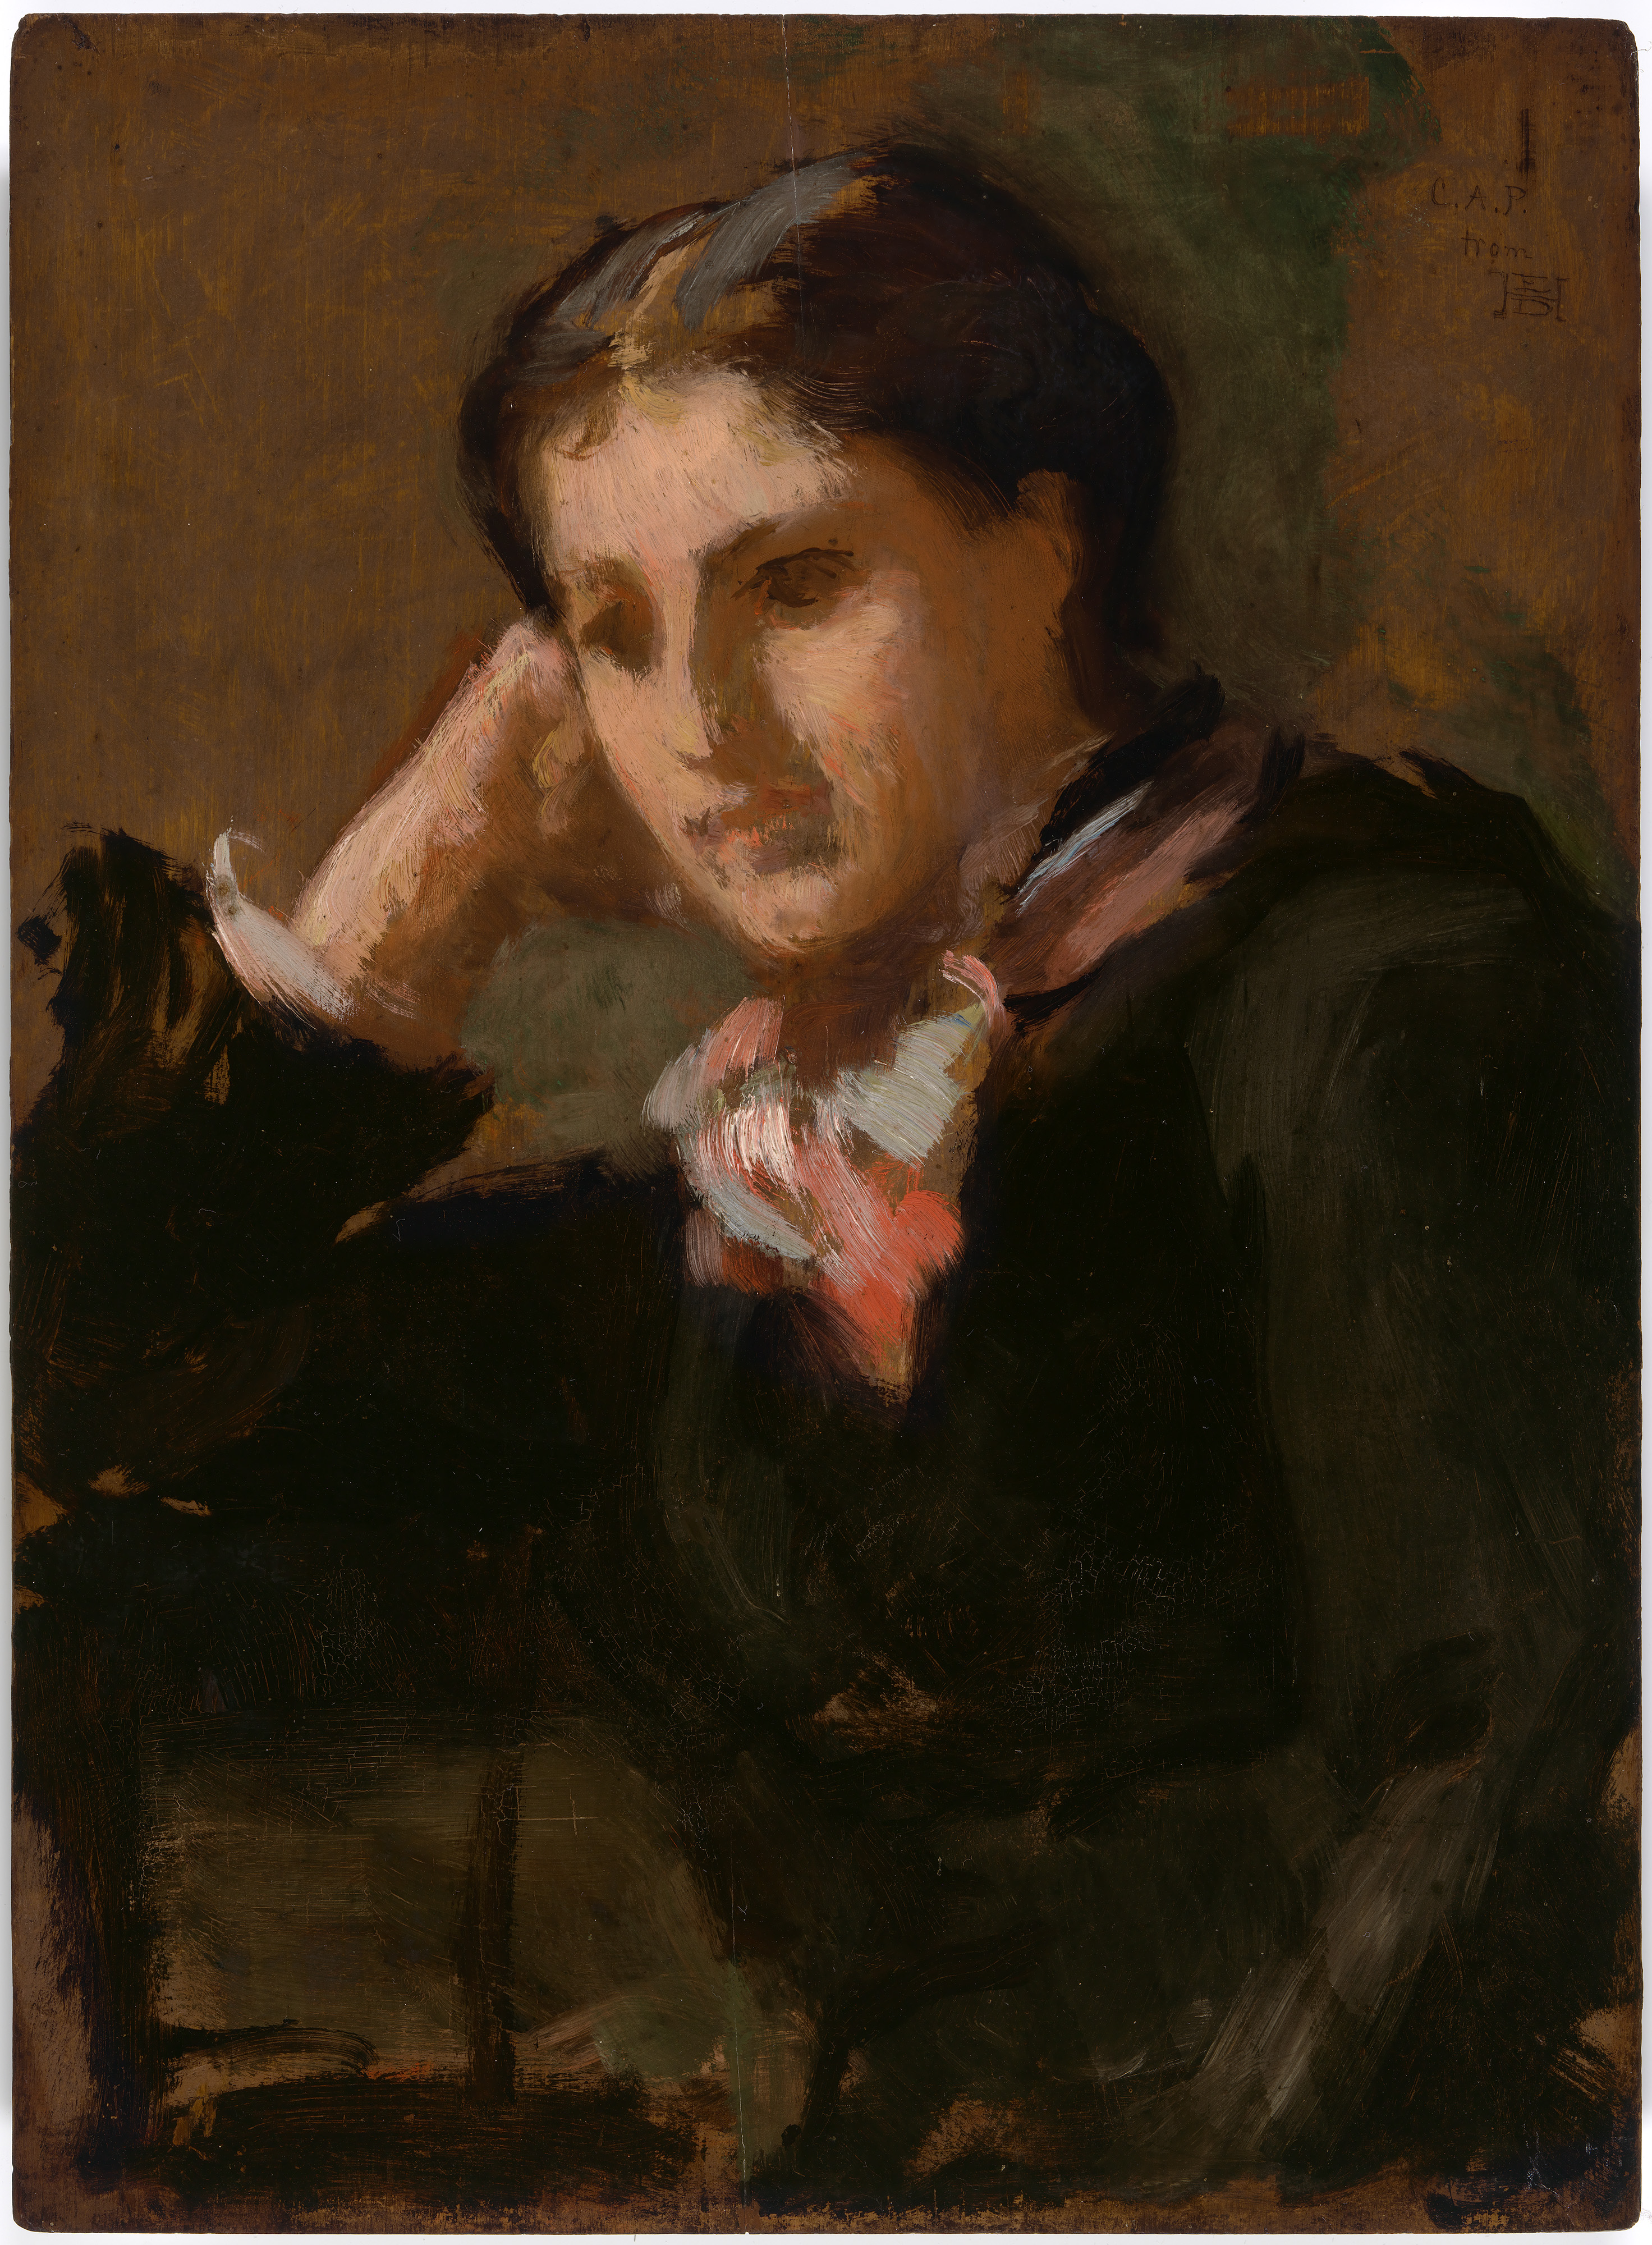 Painterly portrait of a woman looking away from the viewer